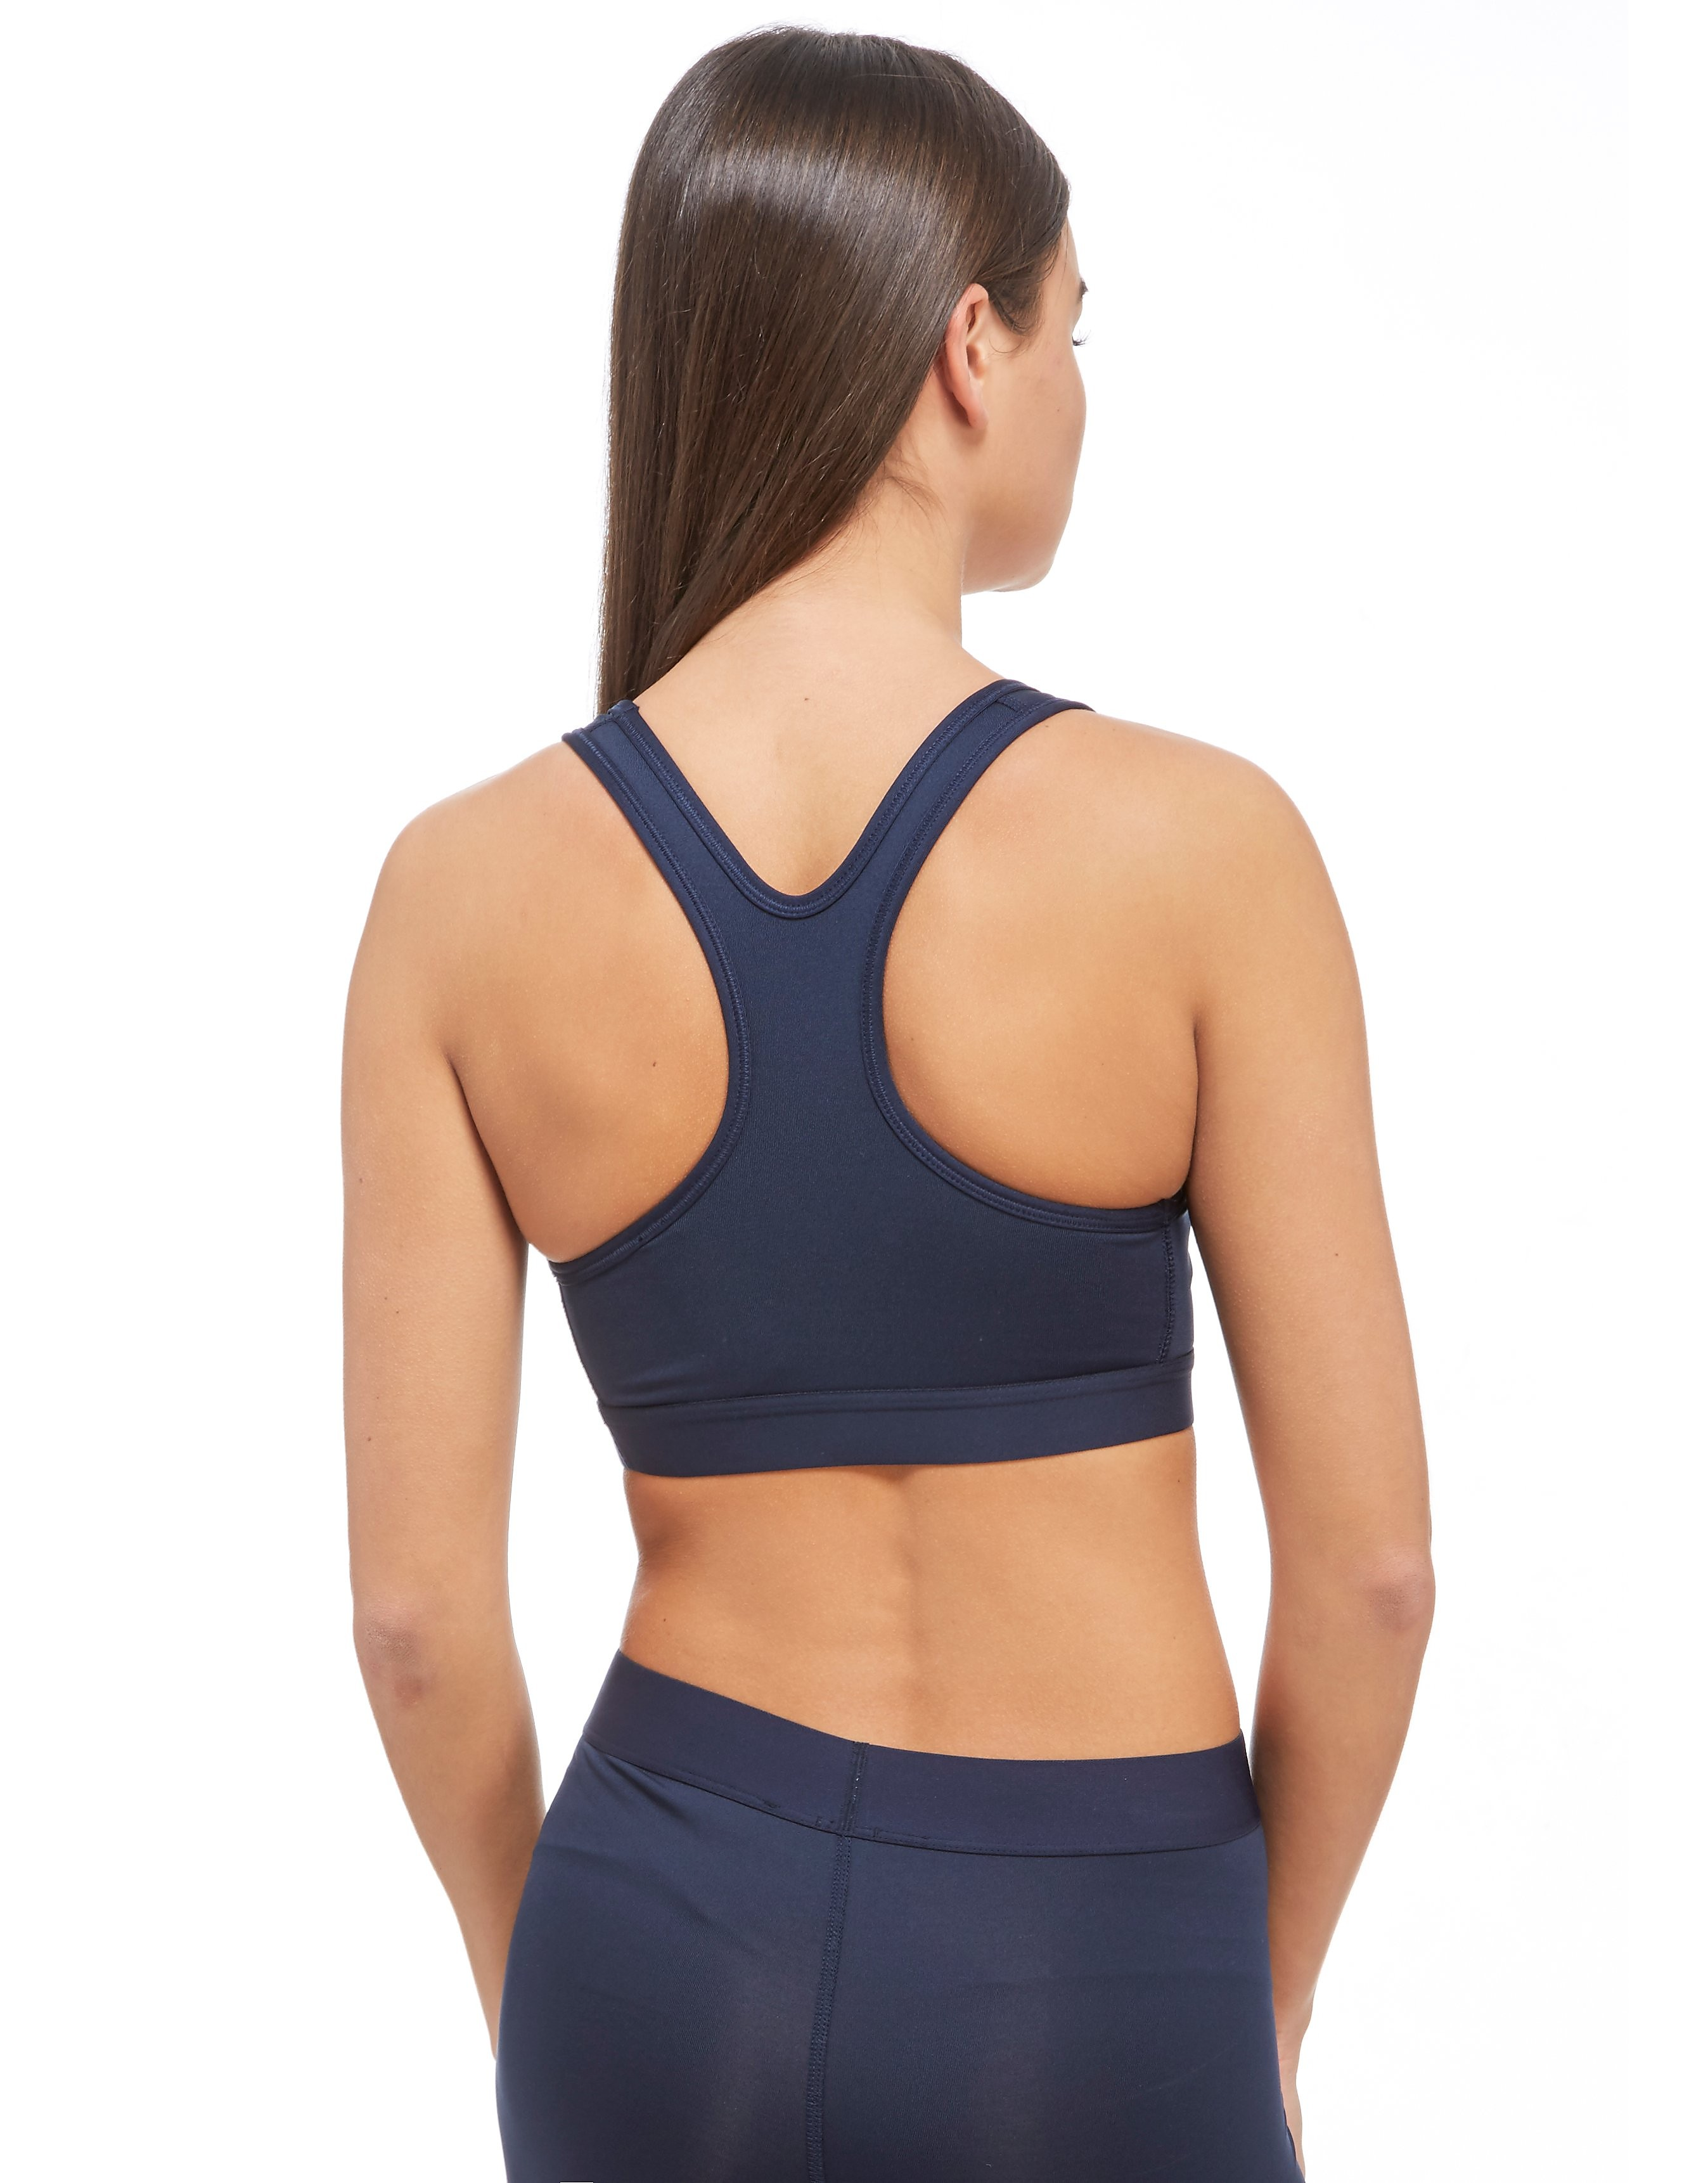 Nike Metallic Swoosh Sports Bra